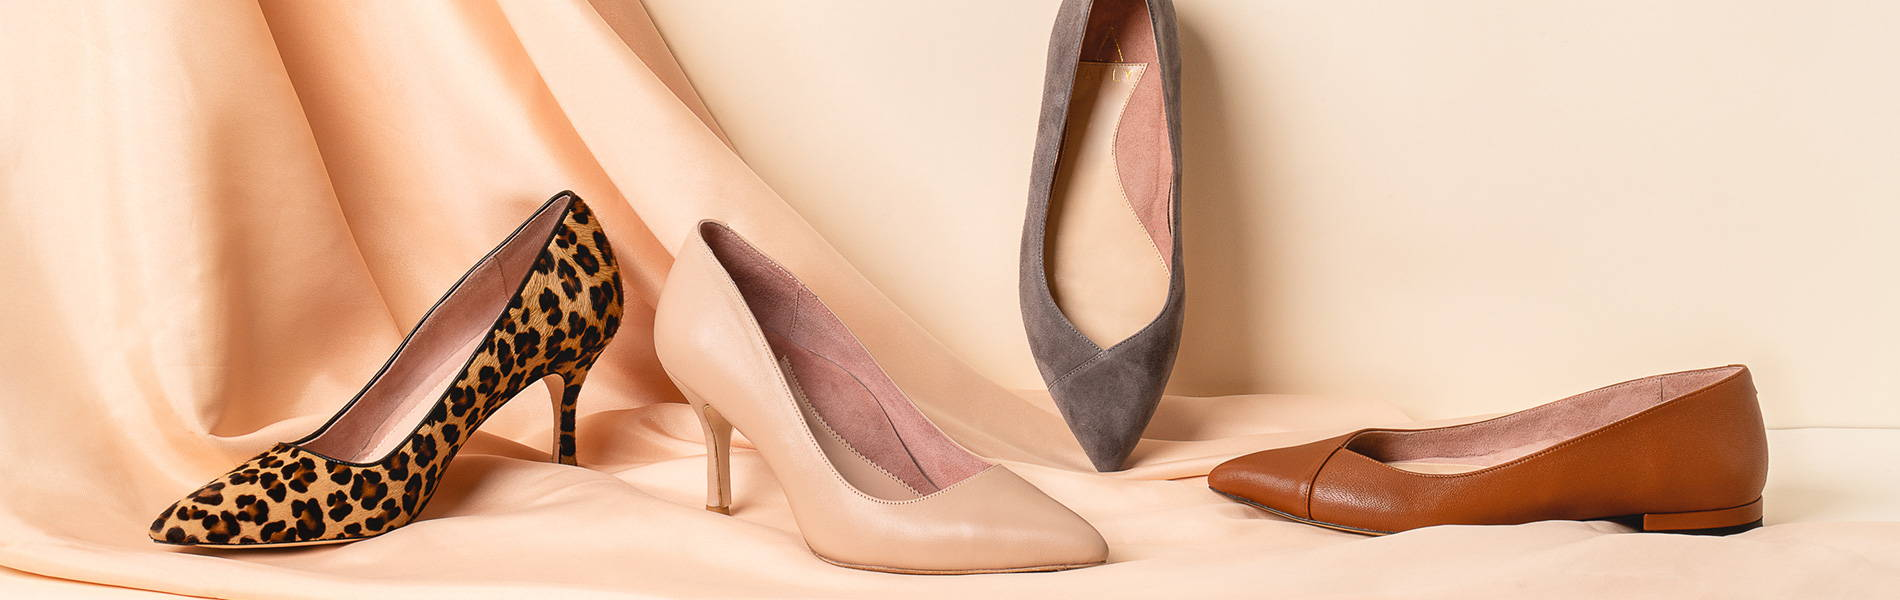 Comfortable Work Shoes | ALLY Shoes